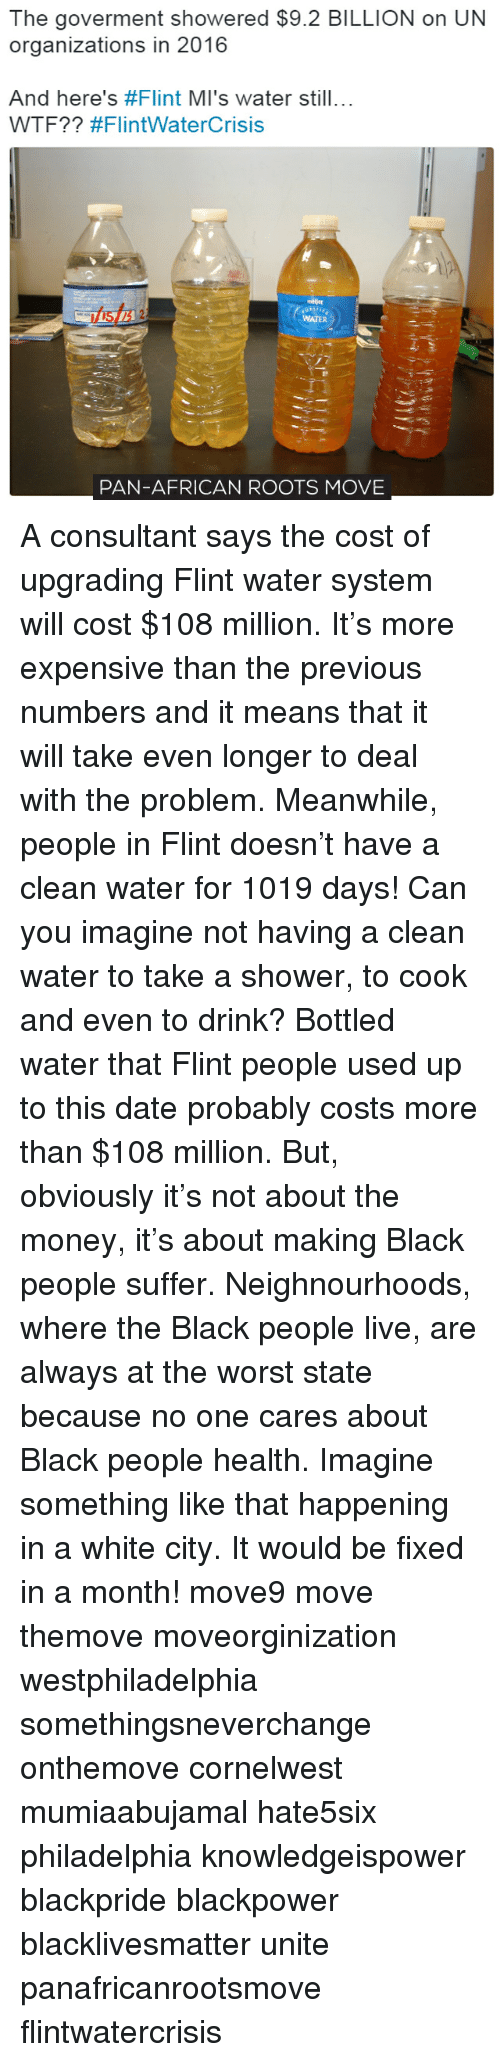 no-one-care: The goverment showered $9.2 BILLION on UN  organizations in 2016  And here's #Flint MI's water still...  WTF?? #FlintWater Crisis  WATER  PAN-AFRICAN ROOTS MOVE A consultant says the cost of upgrading Flint water system will cost $108 million. It's more expensive than the previous numbers and it means that it will take even longer to deal with the problem. Meanwhile, people in Flint doesn't have a clean water for 1019 days! Can you imagine not having a clean water to take a shower, to cook and even to drink? Bottled water that Flint people used up to this date probably costs more than $108 million. But, obviously it's not about the money, it's about making Black people suffer. Neighnourhoods, where the Black people live, are always at the worst state because no one cares about Black people health. Imagine something like that happening in a white city. It would be fixed in a month! move9 move themove moveorginization westphiladelphia somethingsneverchange onthemove cornelwest mumiaabujamal hate5six philadelphia knowledgeispower blackpride blackpower blacklivesmatter unite panafricanrootsmove flintwatercrisis